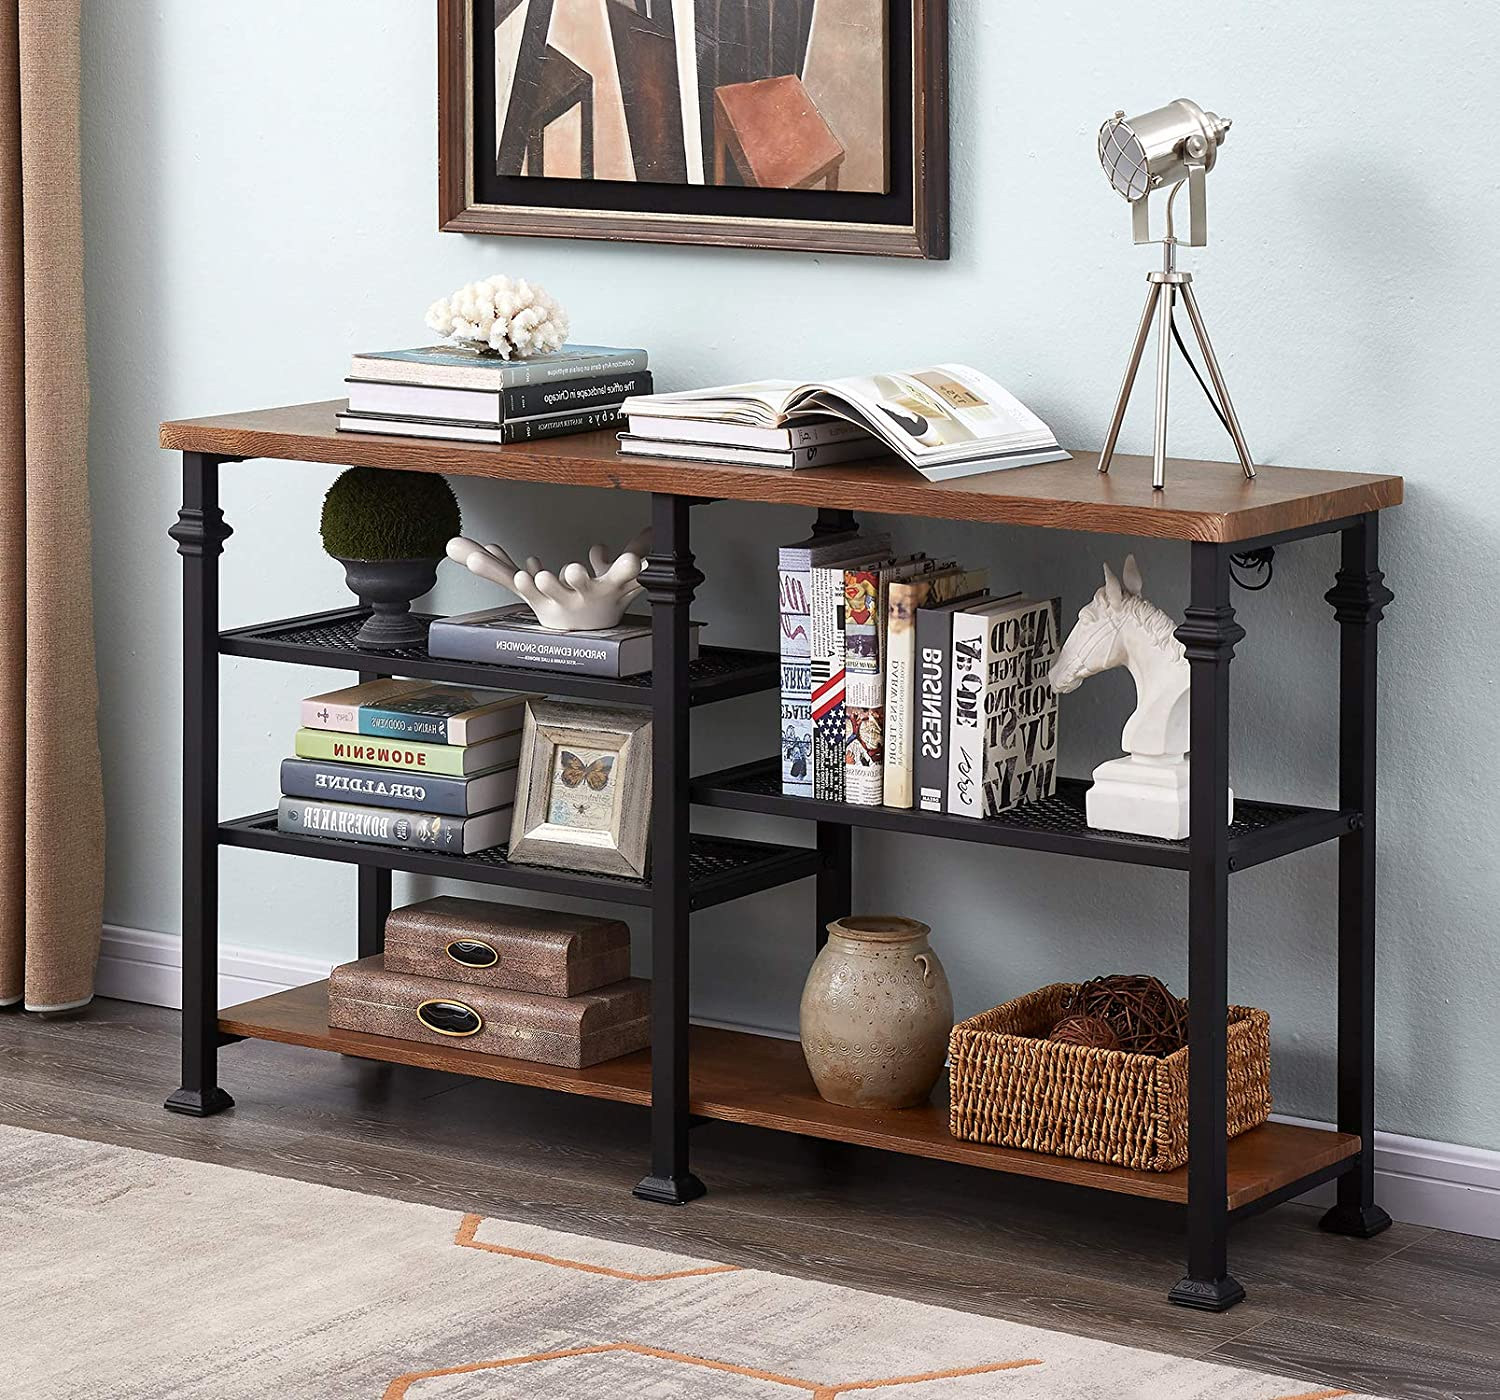 Homissue 55-Inch Rustic Console Sofa Table with Storage Shelf, Entryway Table TV Stand for Living Room, Brown